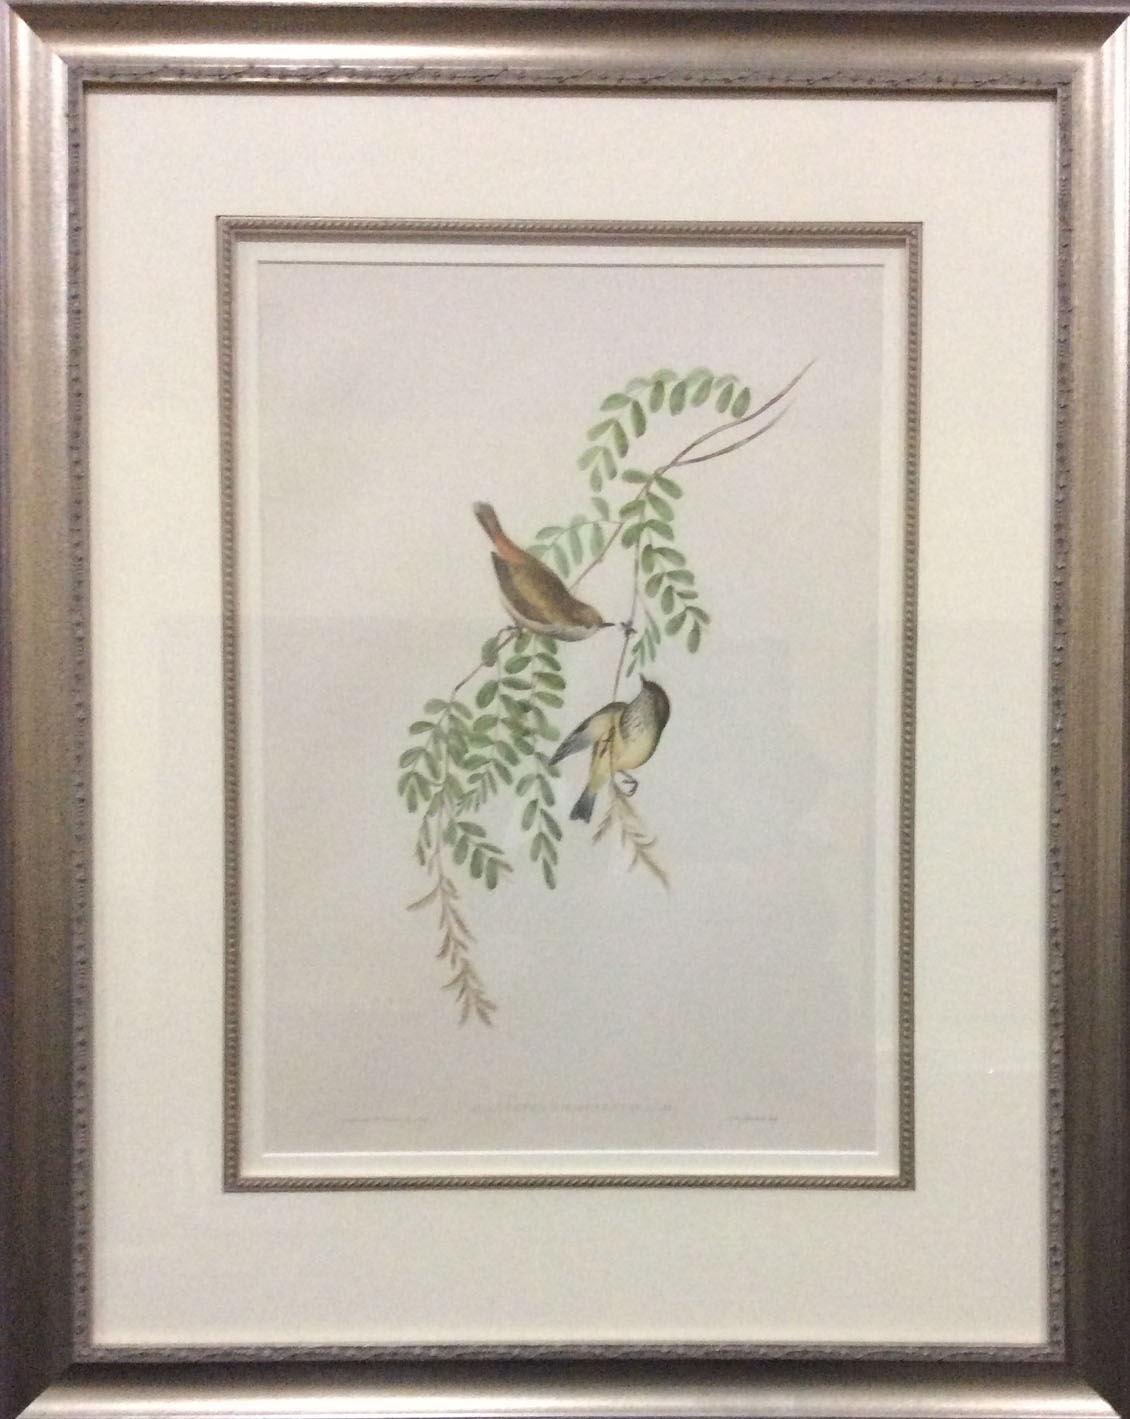 John gould paintings for sale for Artworks for sale online